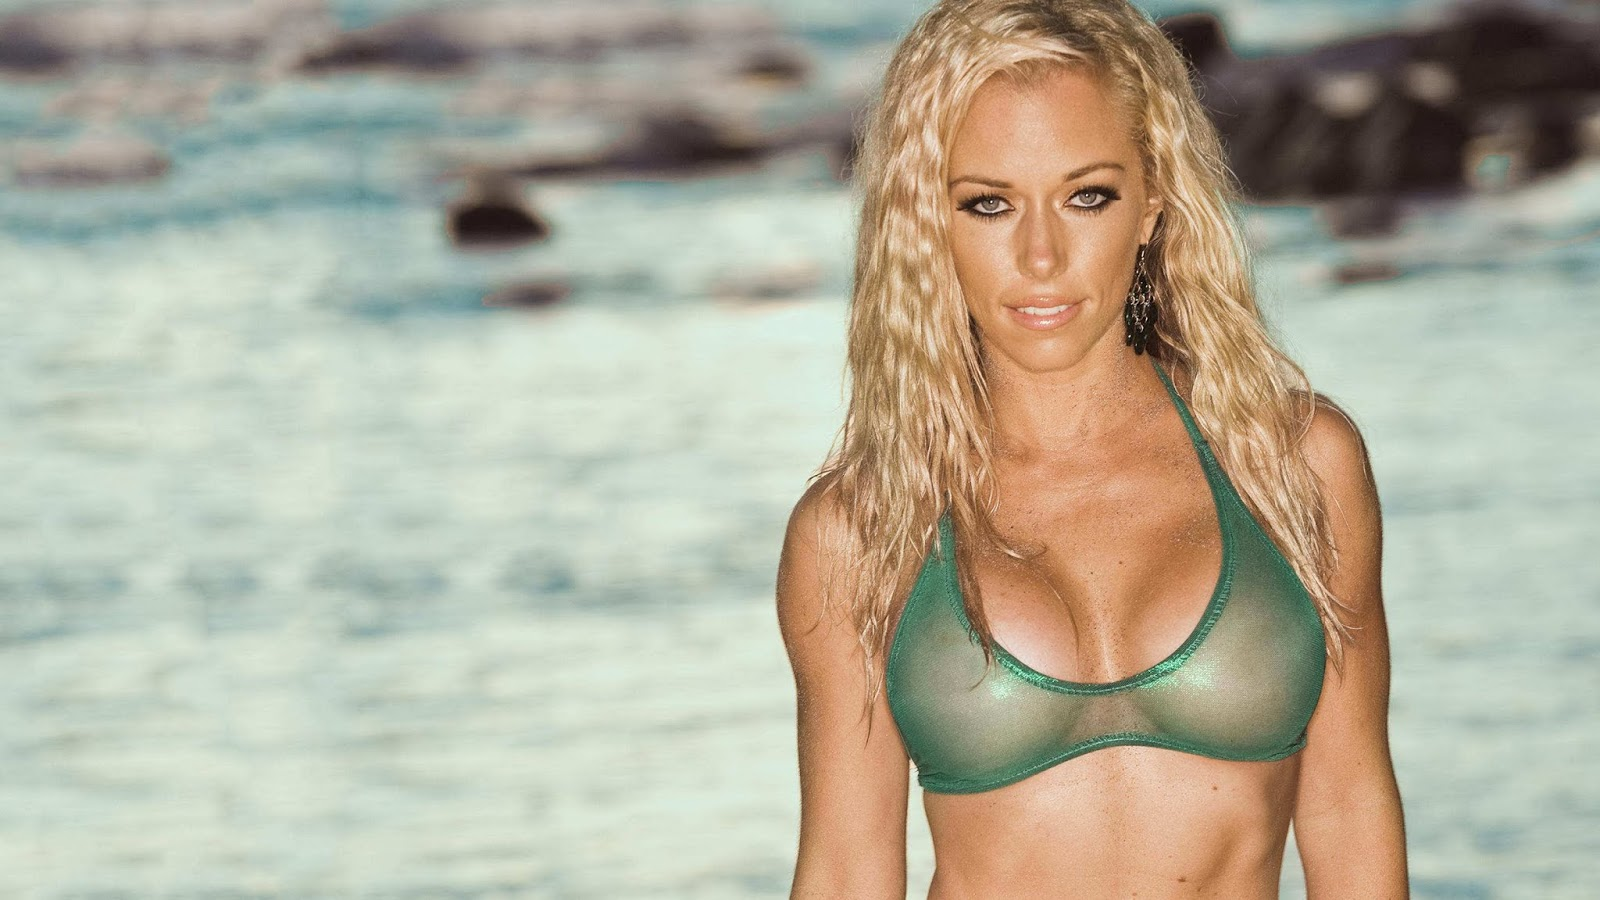 Kendra wilkinson showing her tits